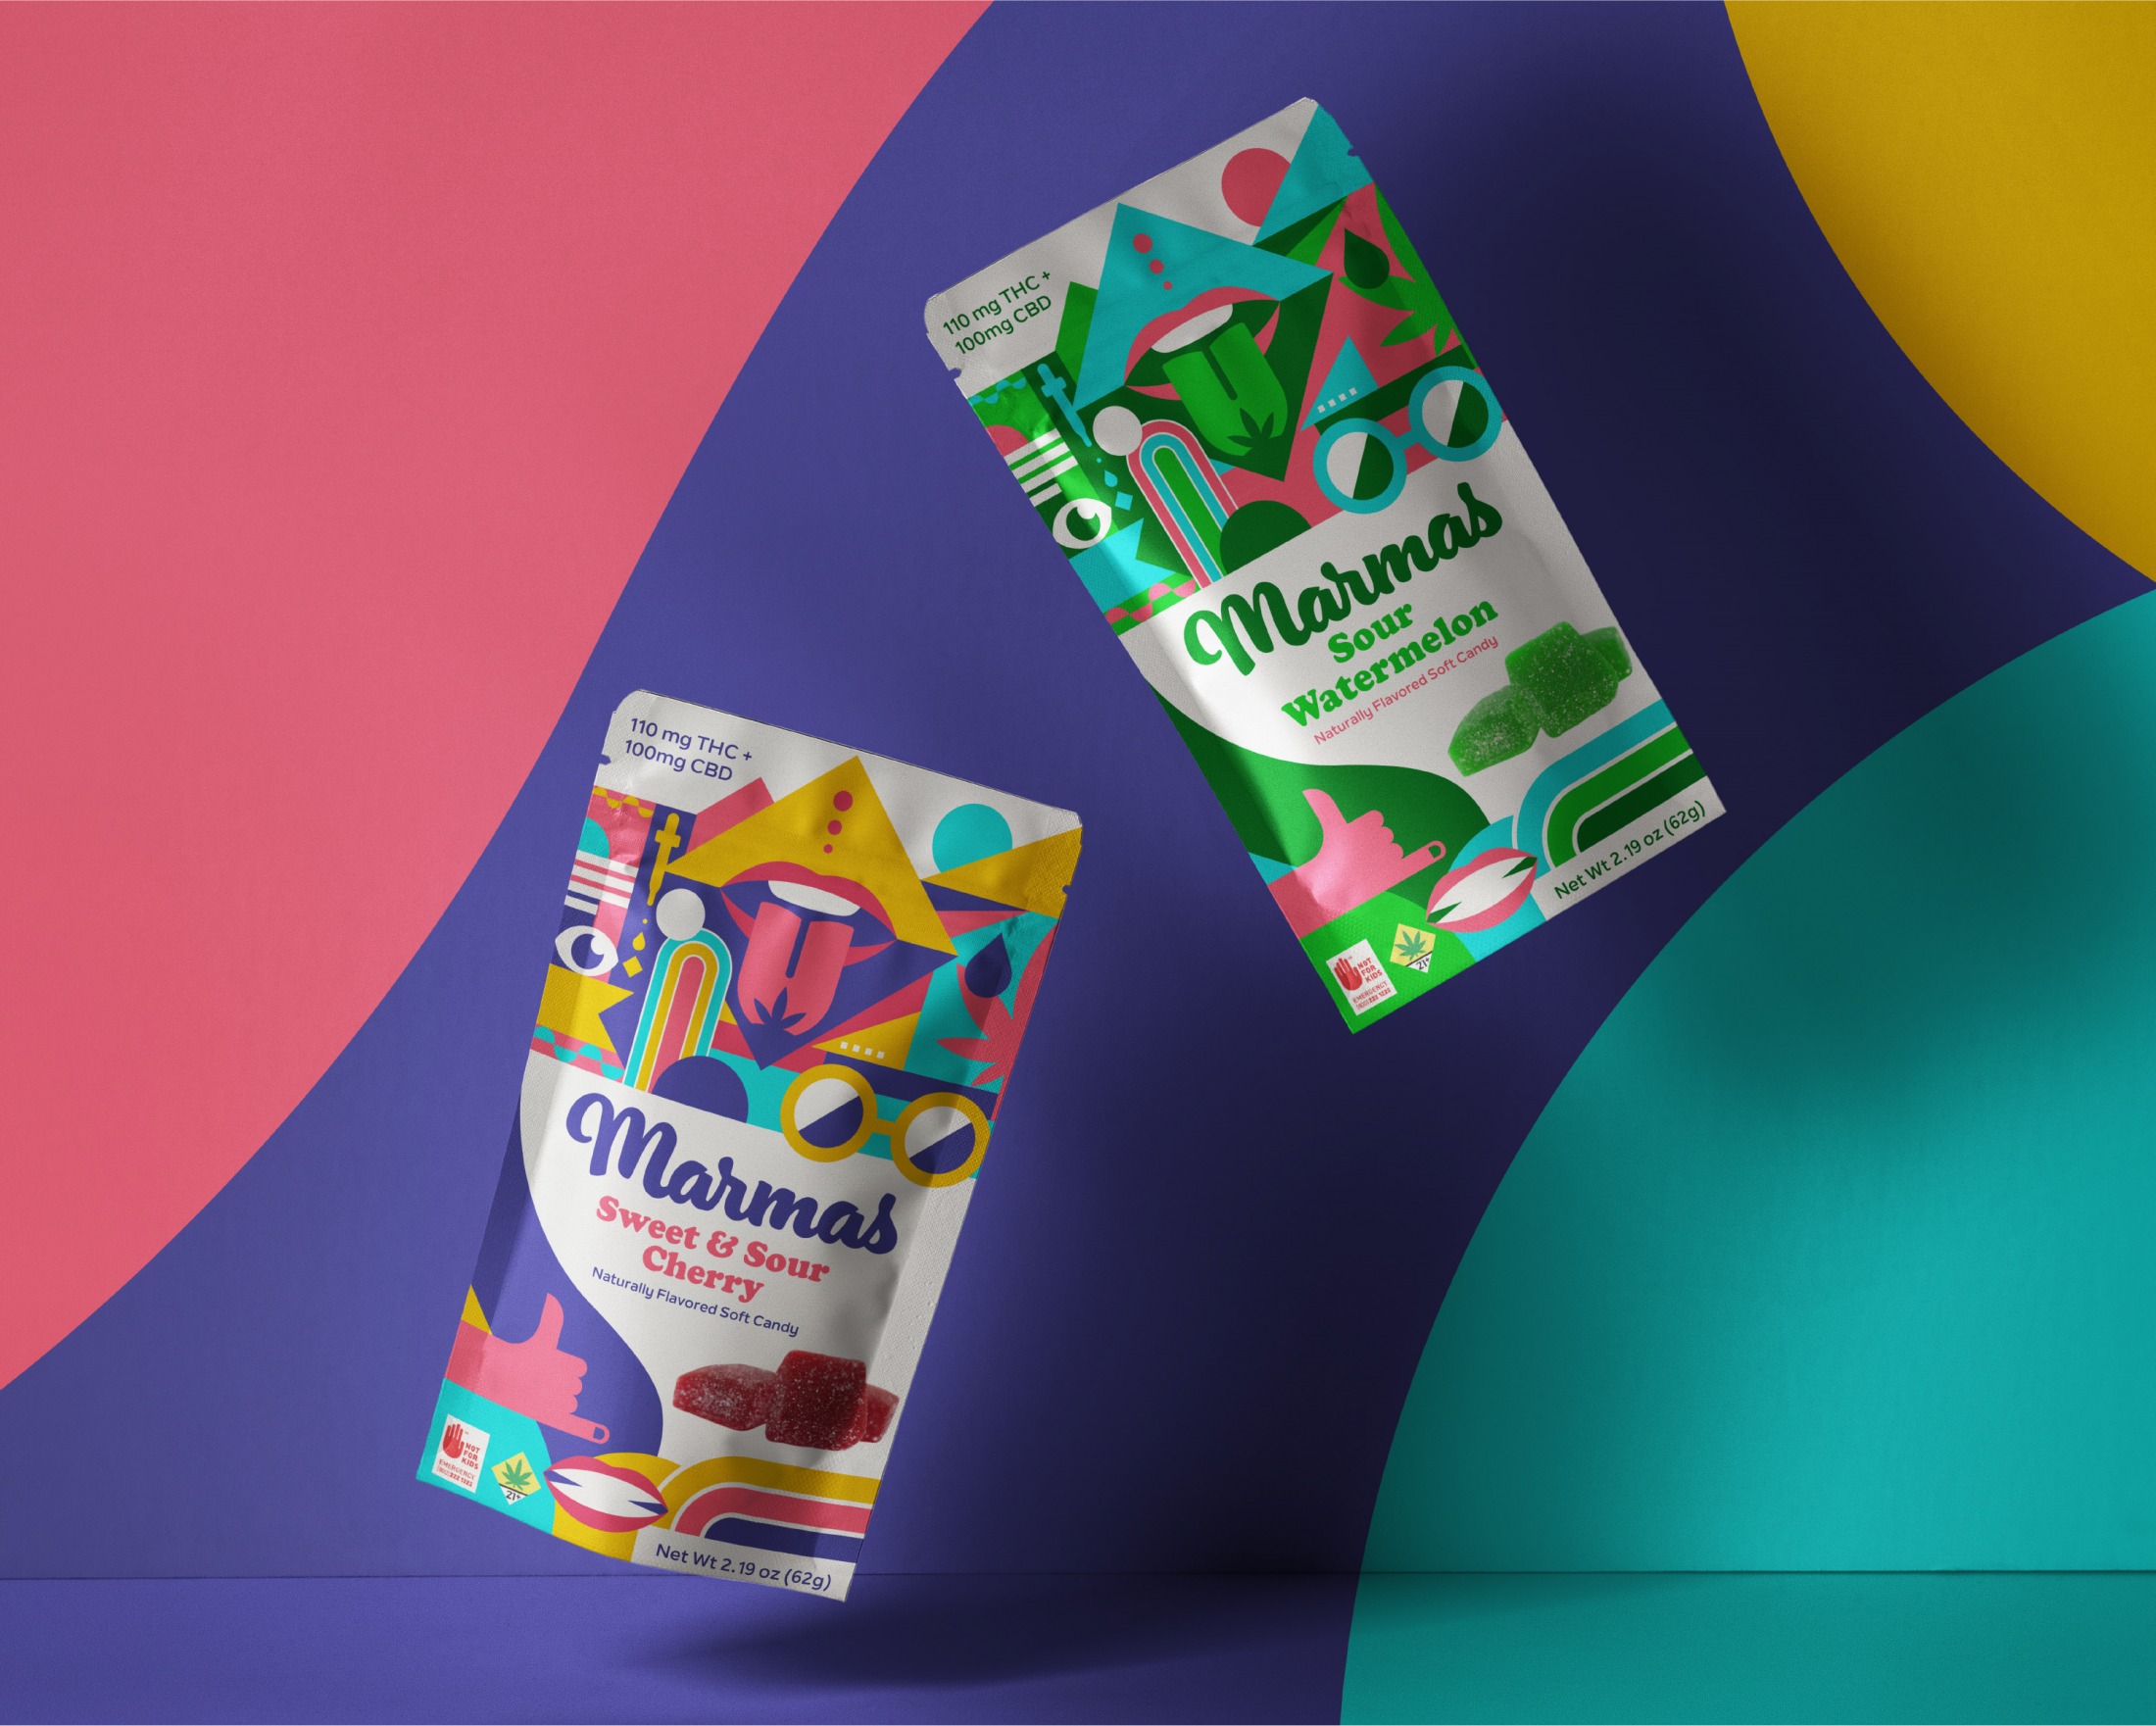 Marmas: Chill. Tasty. Psychedelic.